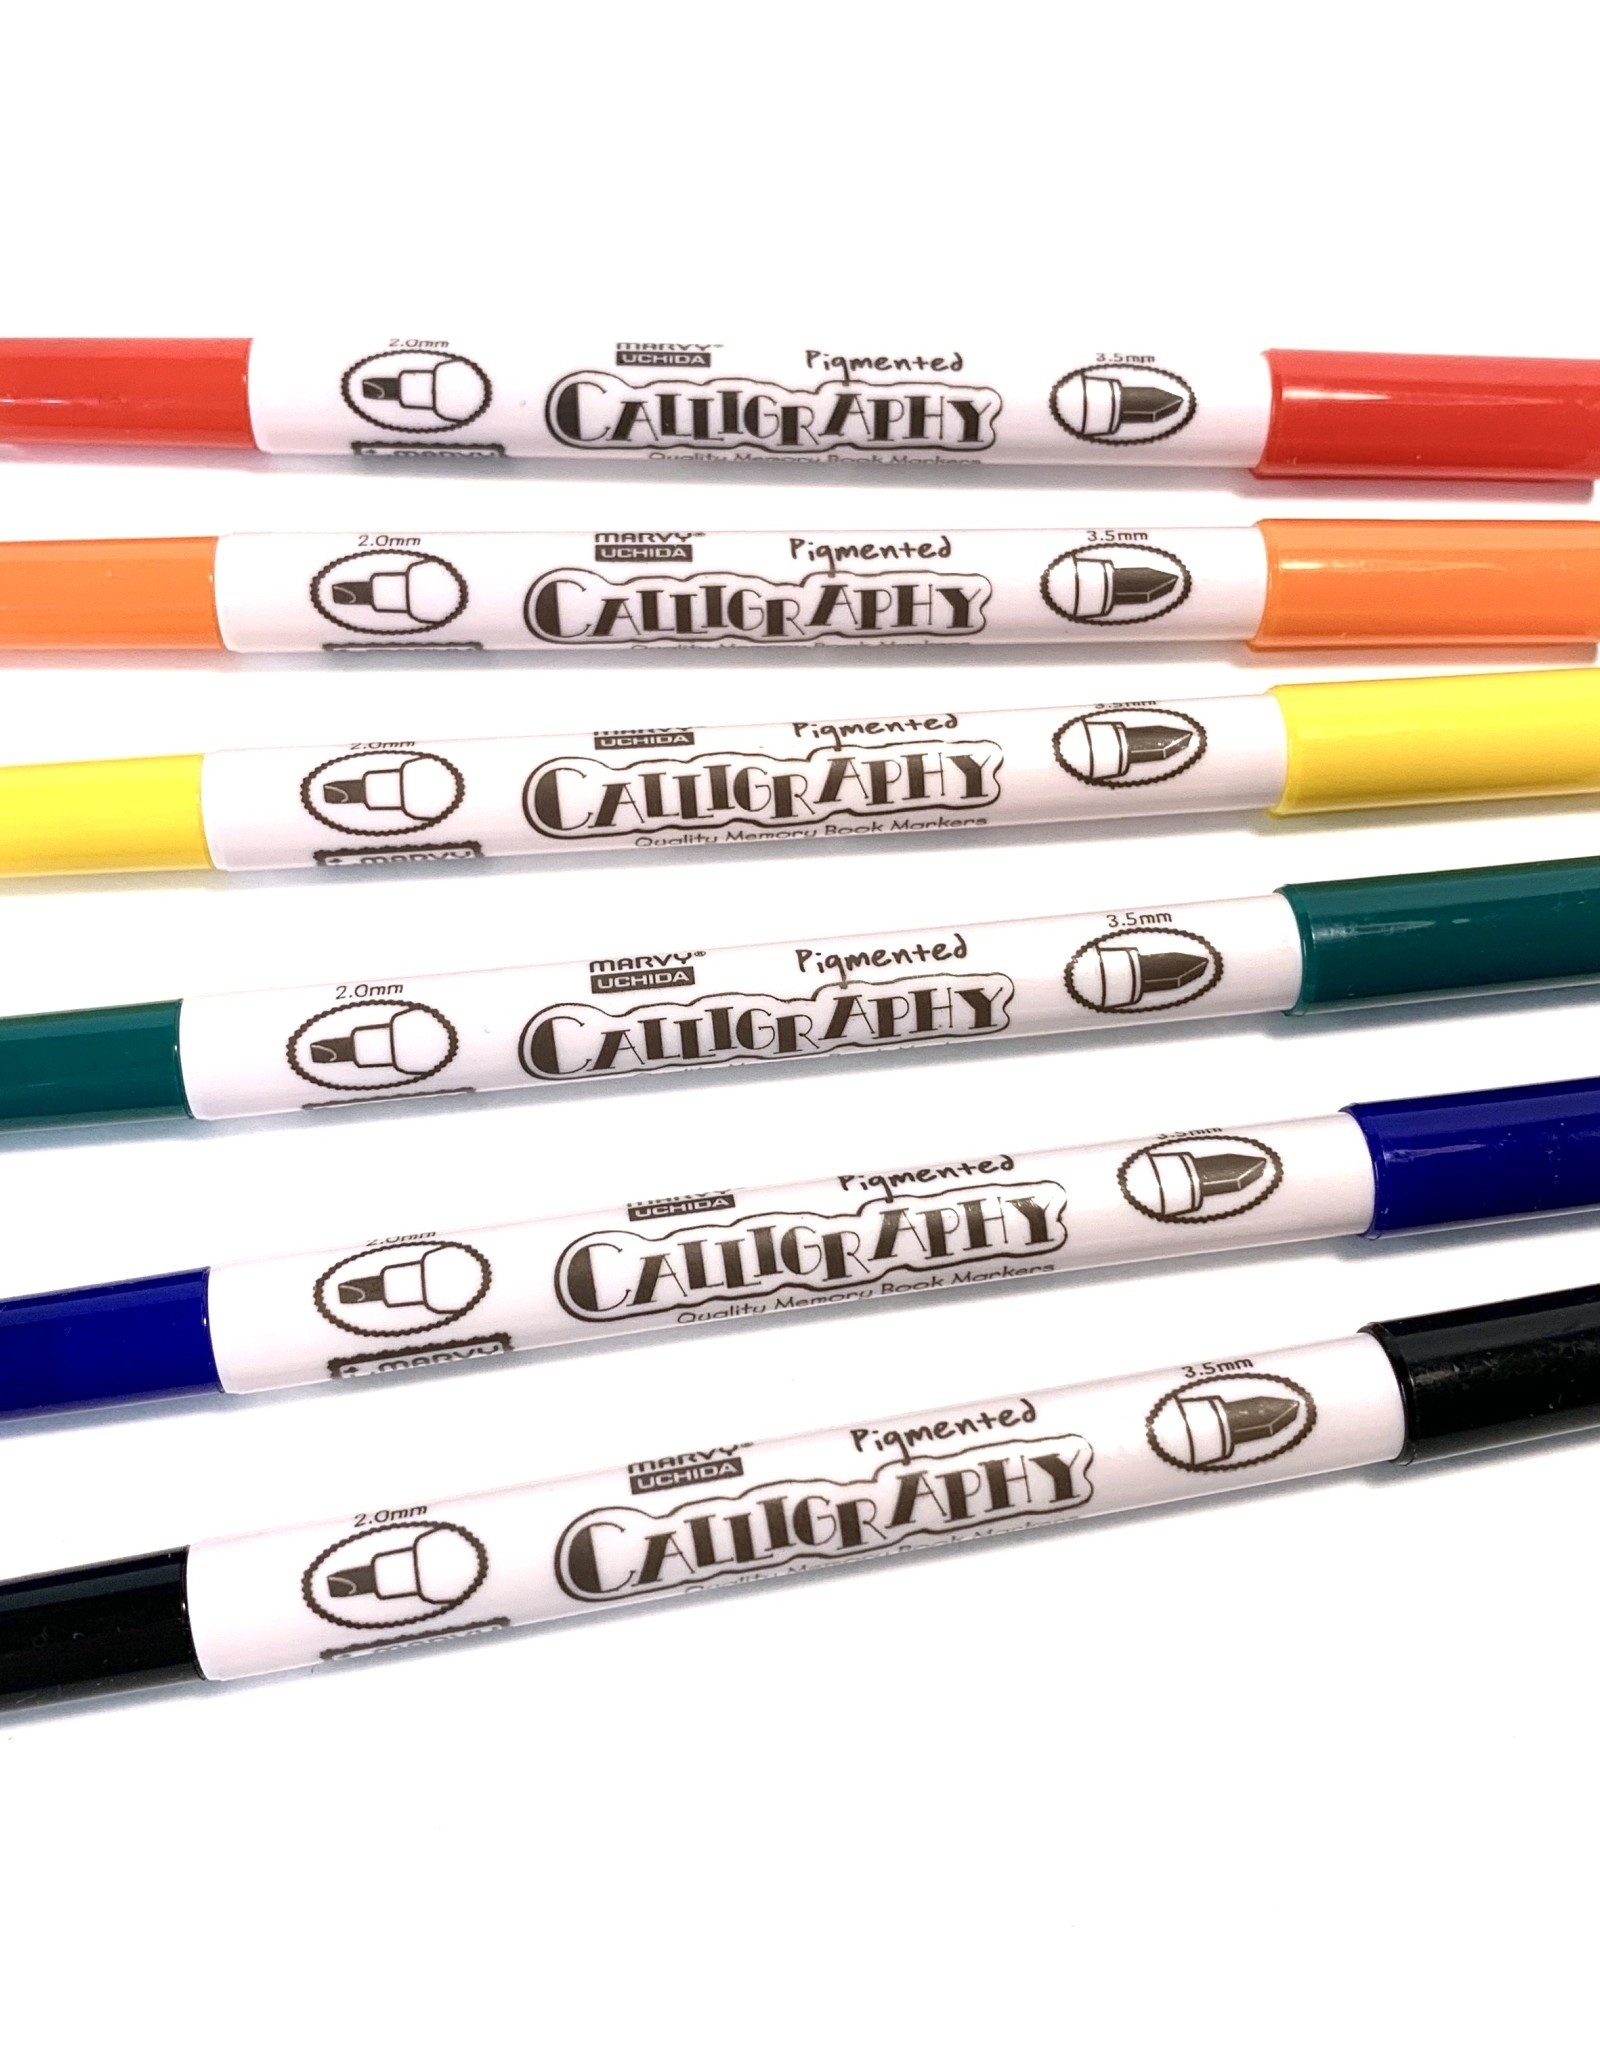 Calligraphy Markers, Dual Tip: 3.5mm 2.0mm, 6 pack